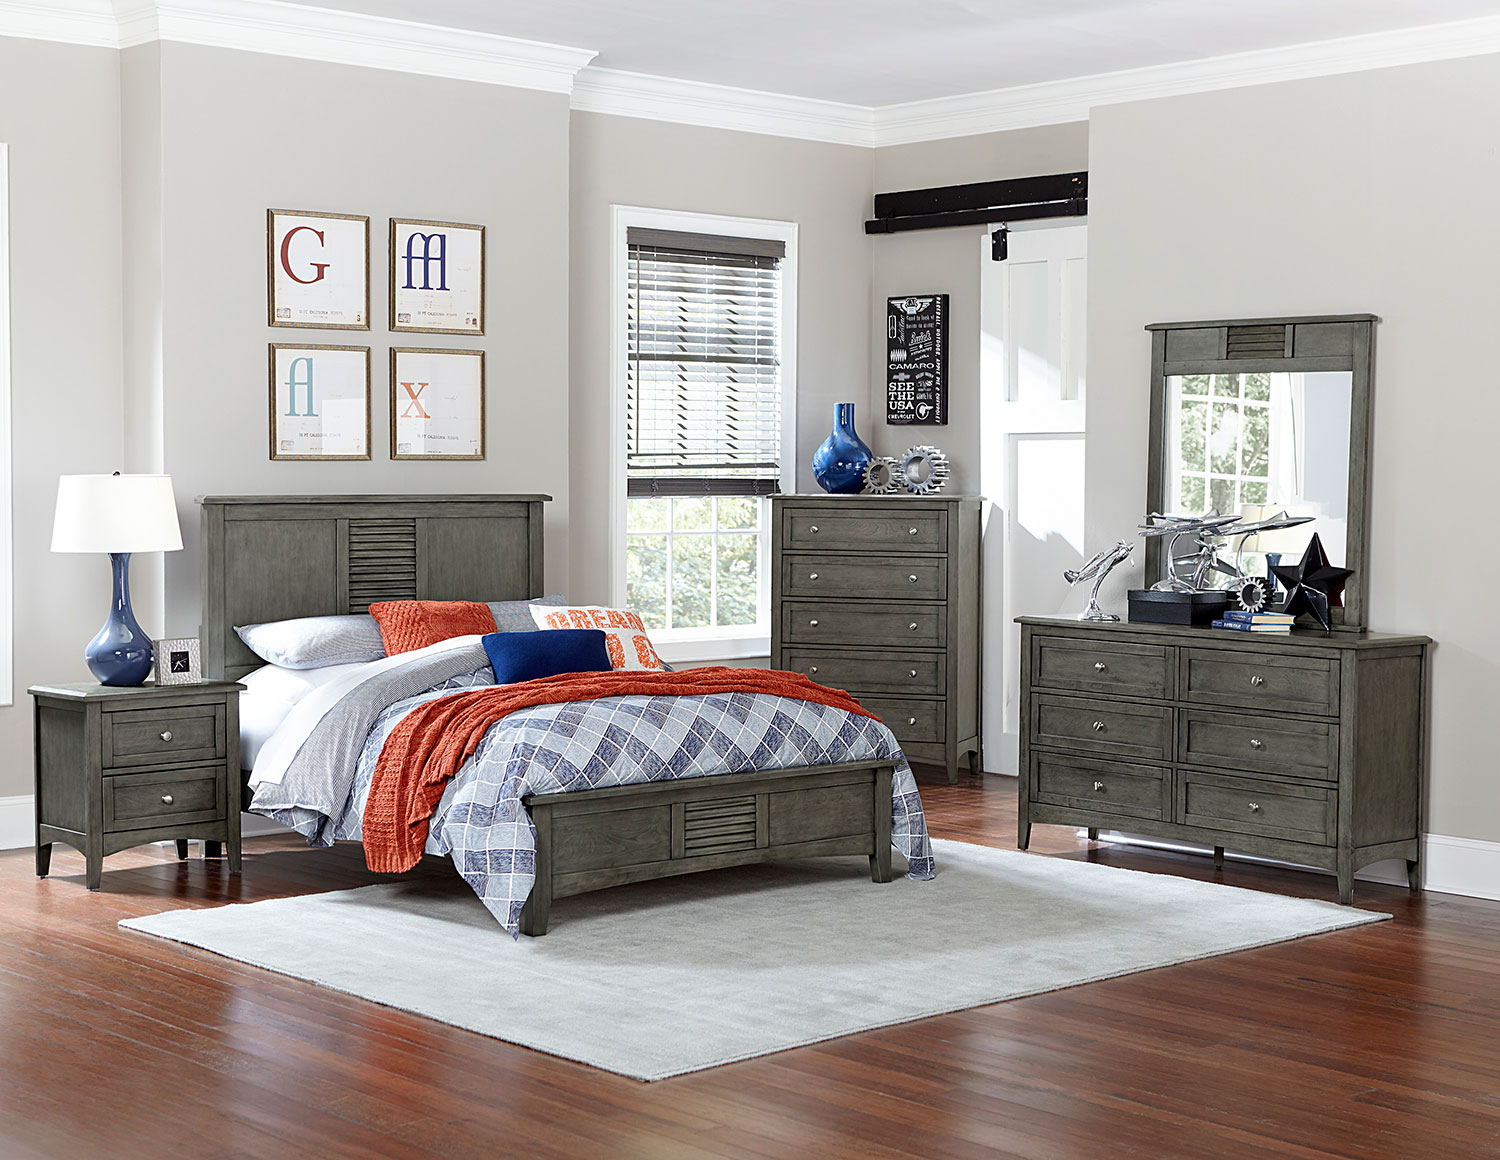 homelegance garcia bedroom set - gray 2046-bedroom-set at